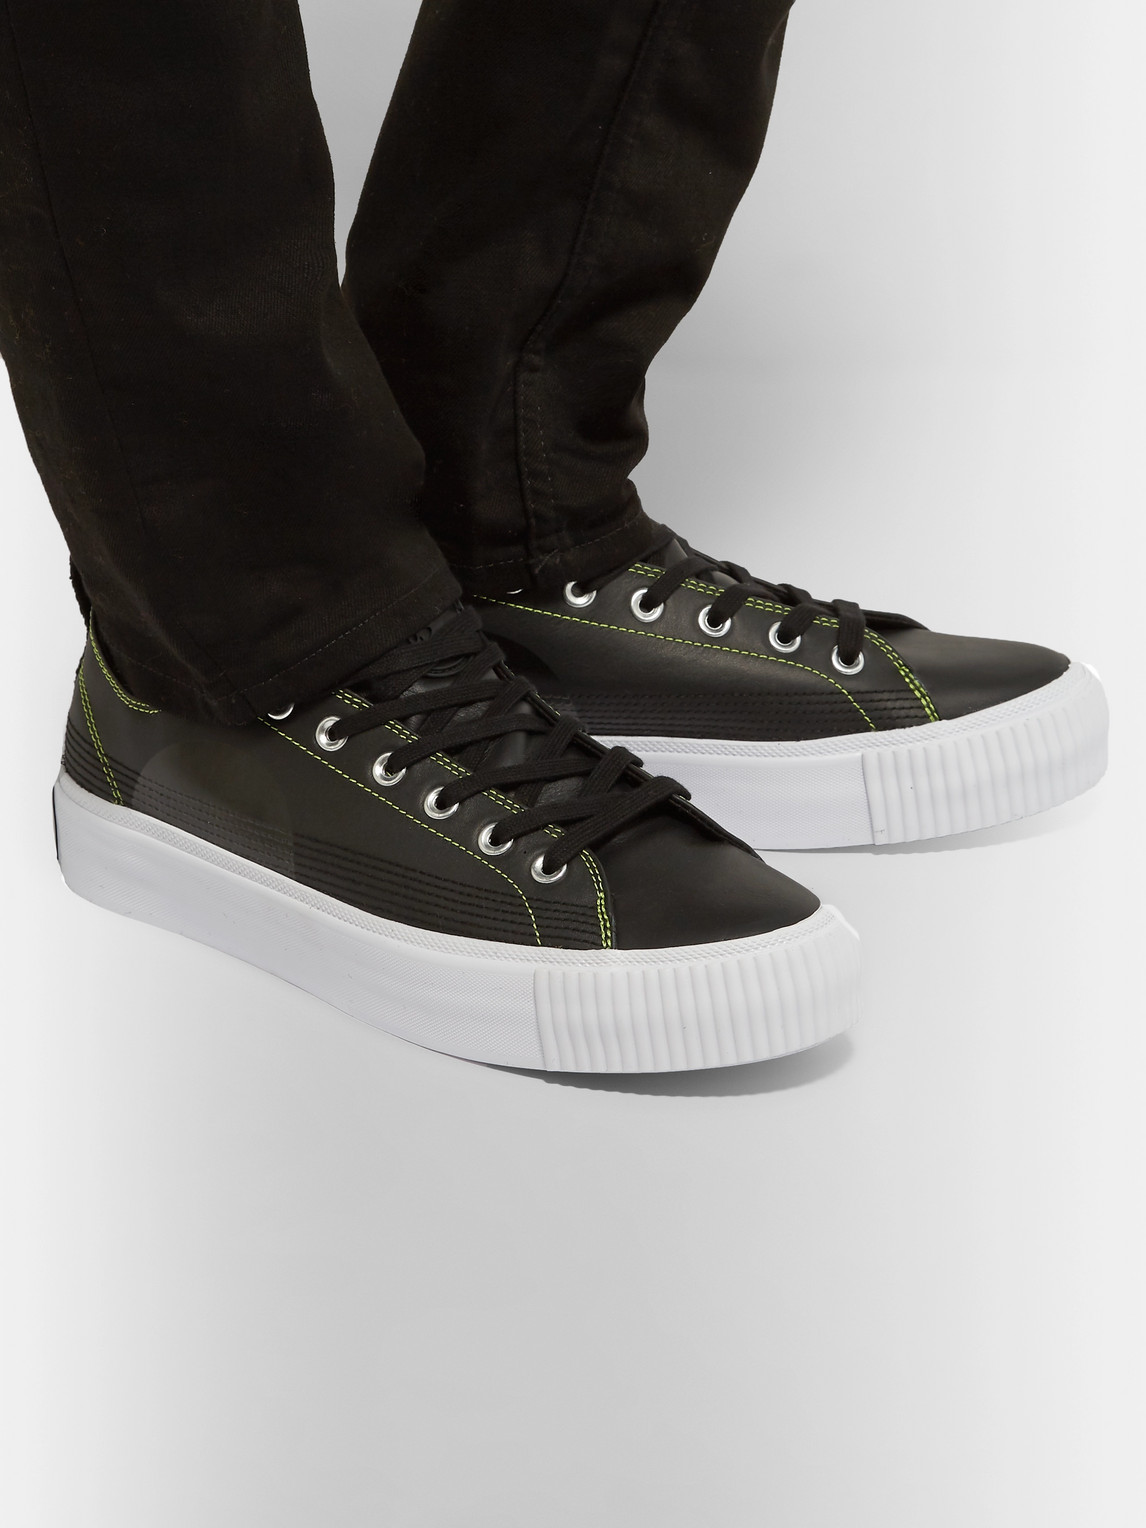 Mcq By Alexander Mcqueen Sneakers PLIMSOLL LEATHER SNEAKERS